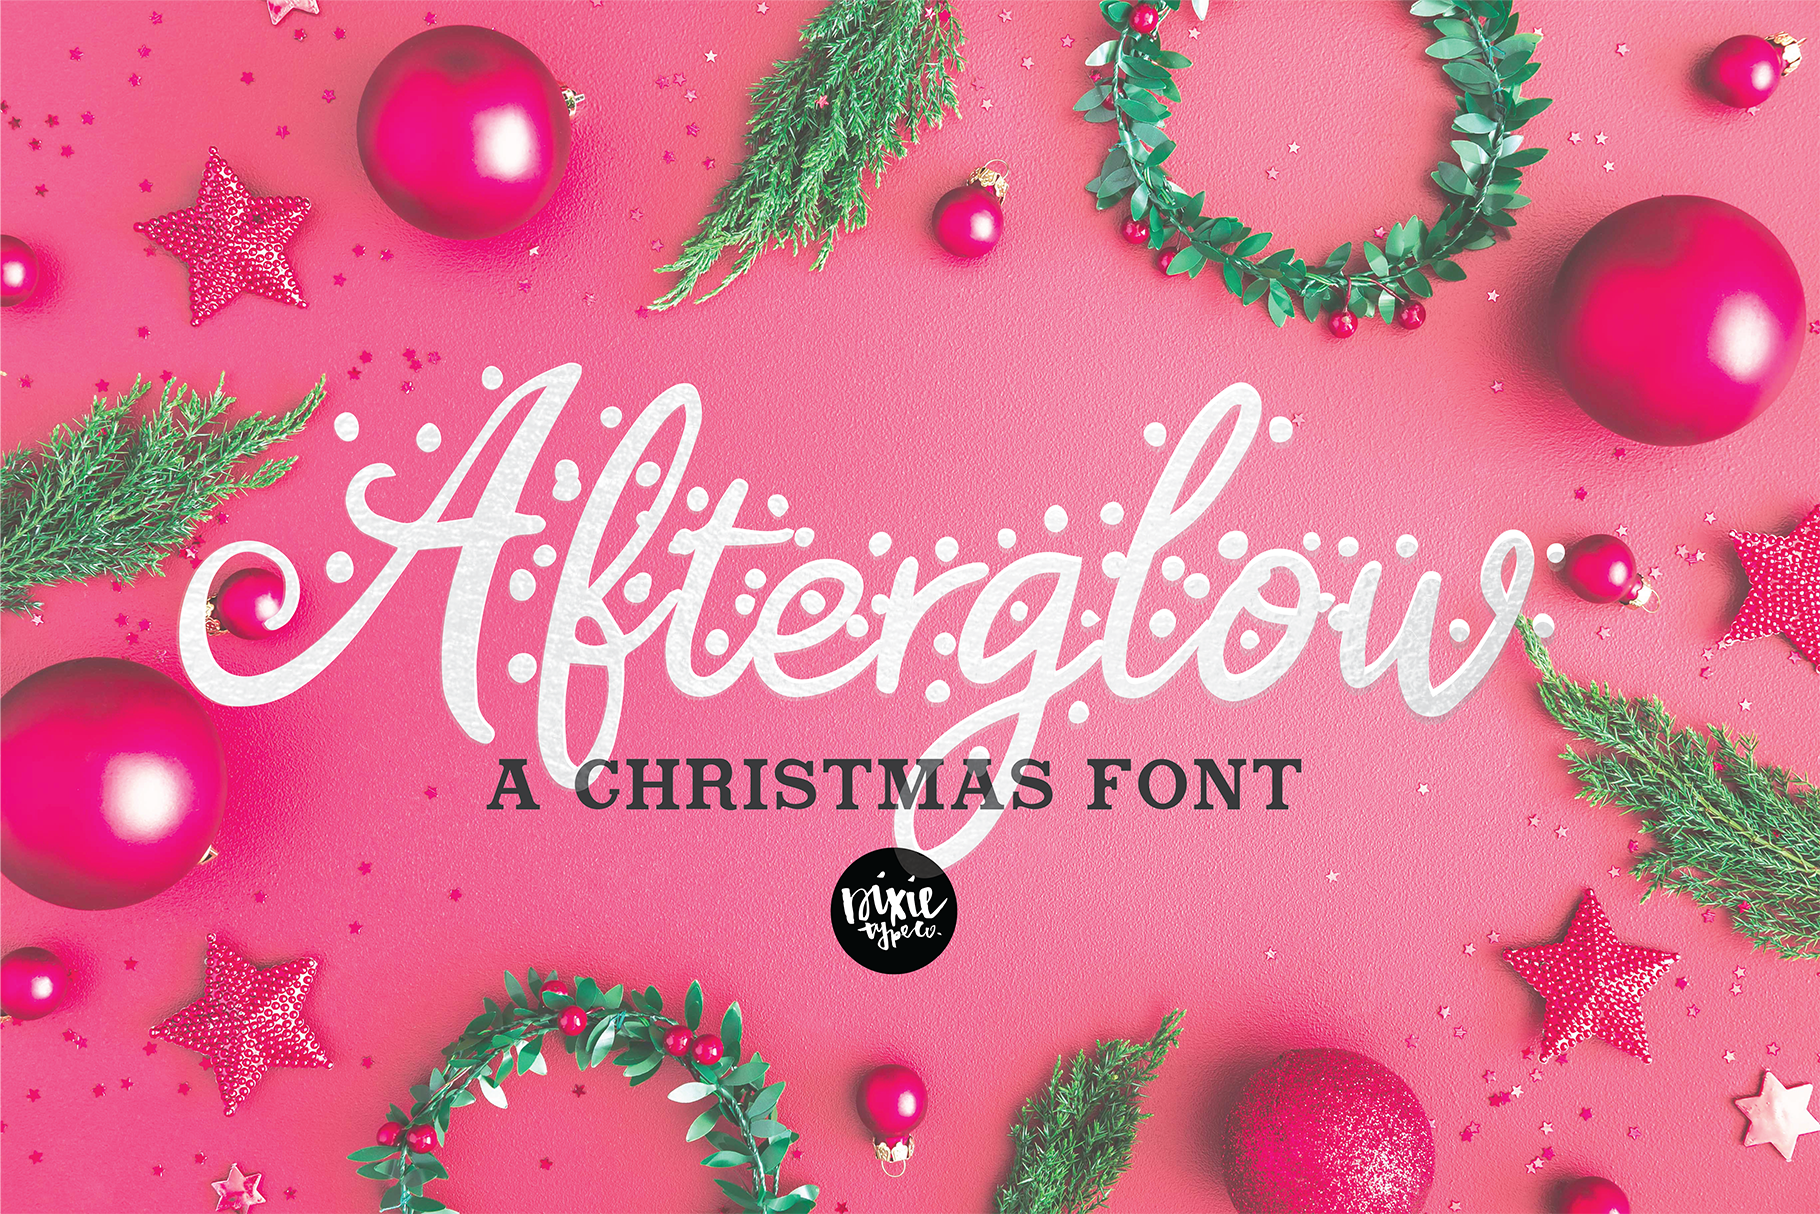 CHRISTMAS FONT BUNDLE - 4 Hand Lettered Christmas Fonts example image 4